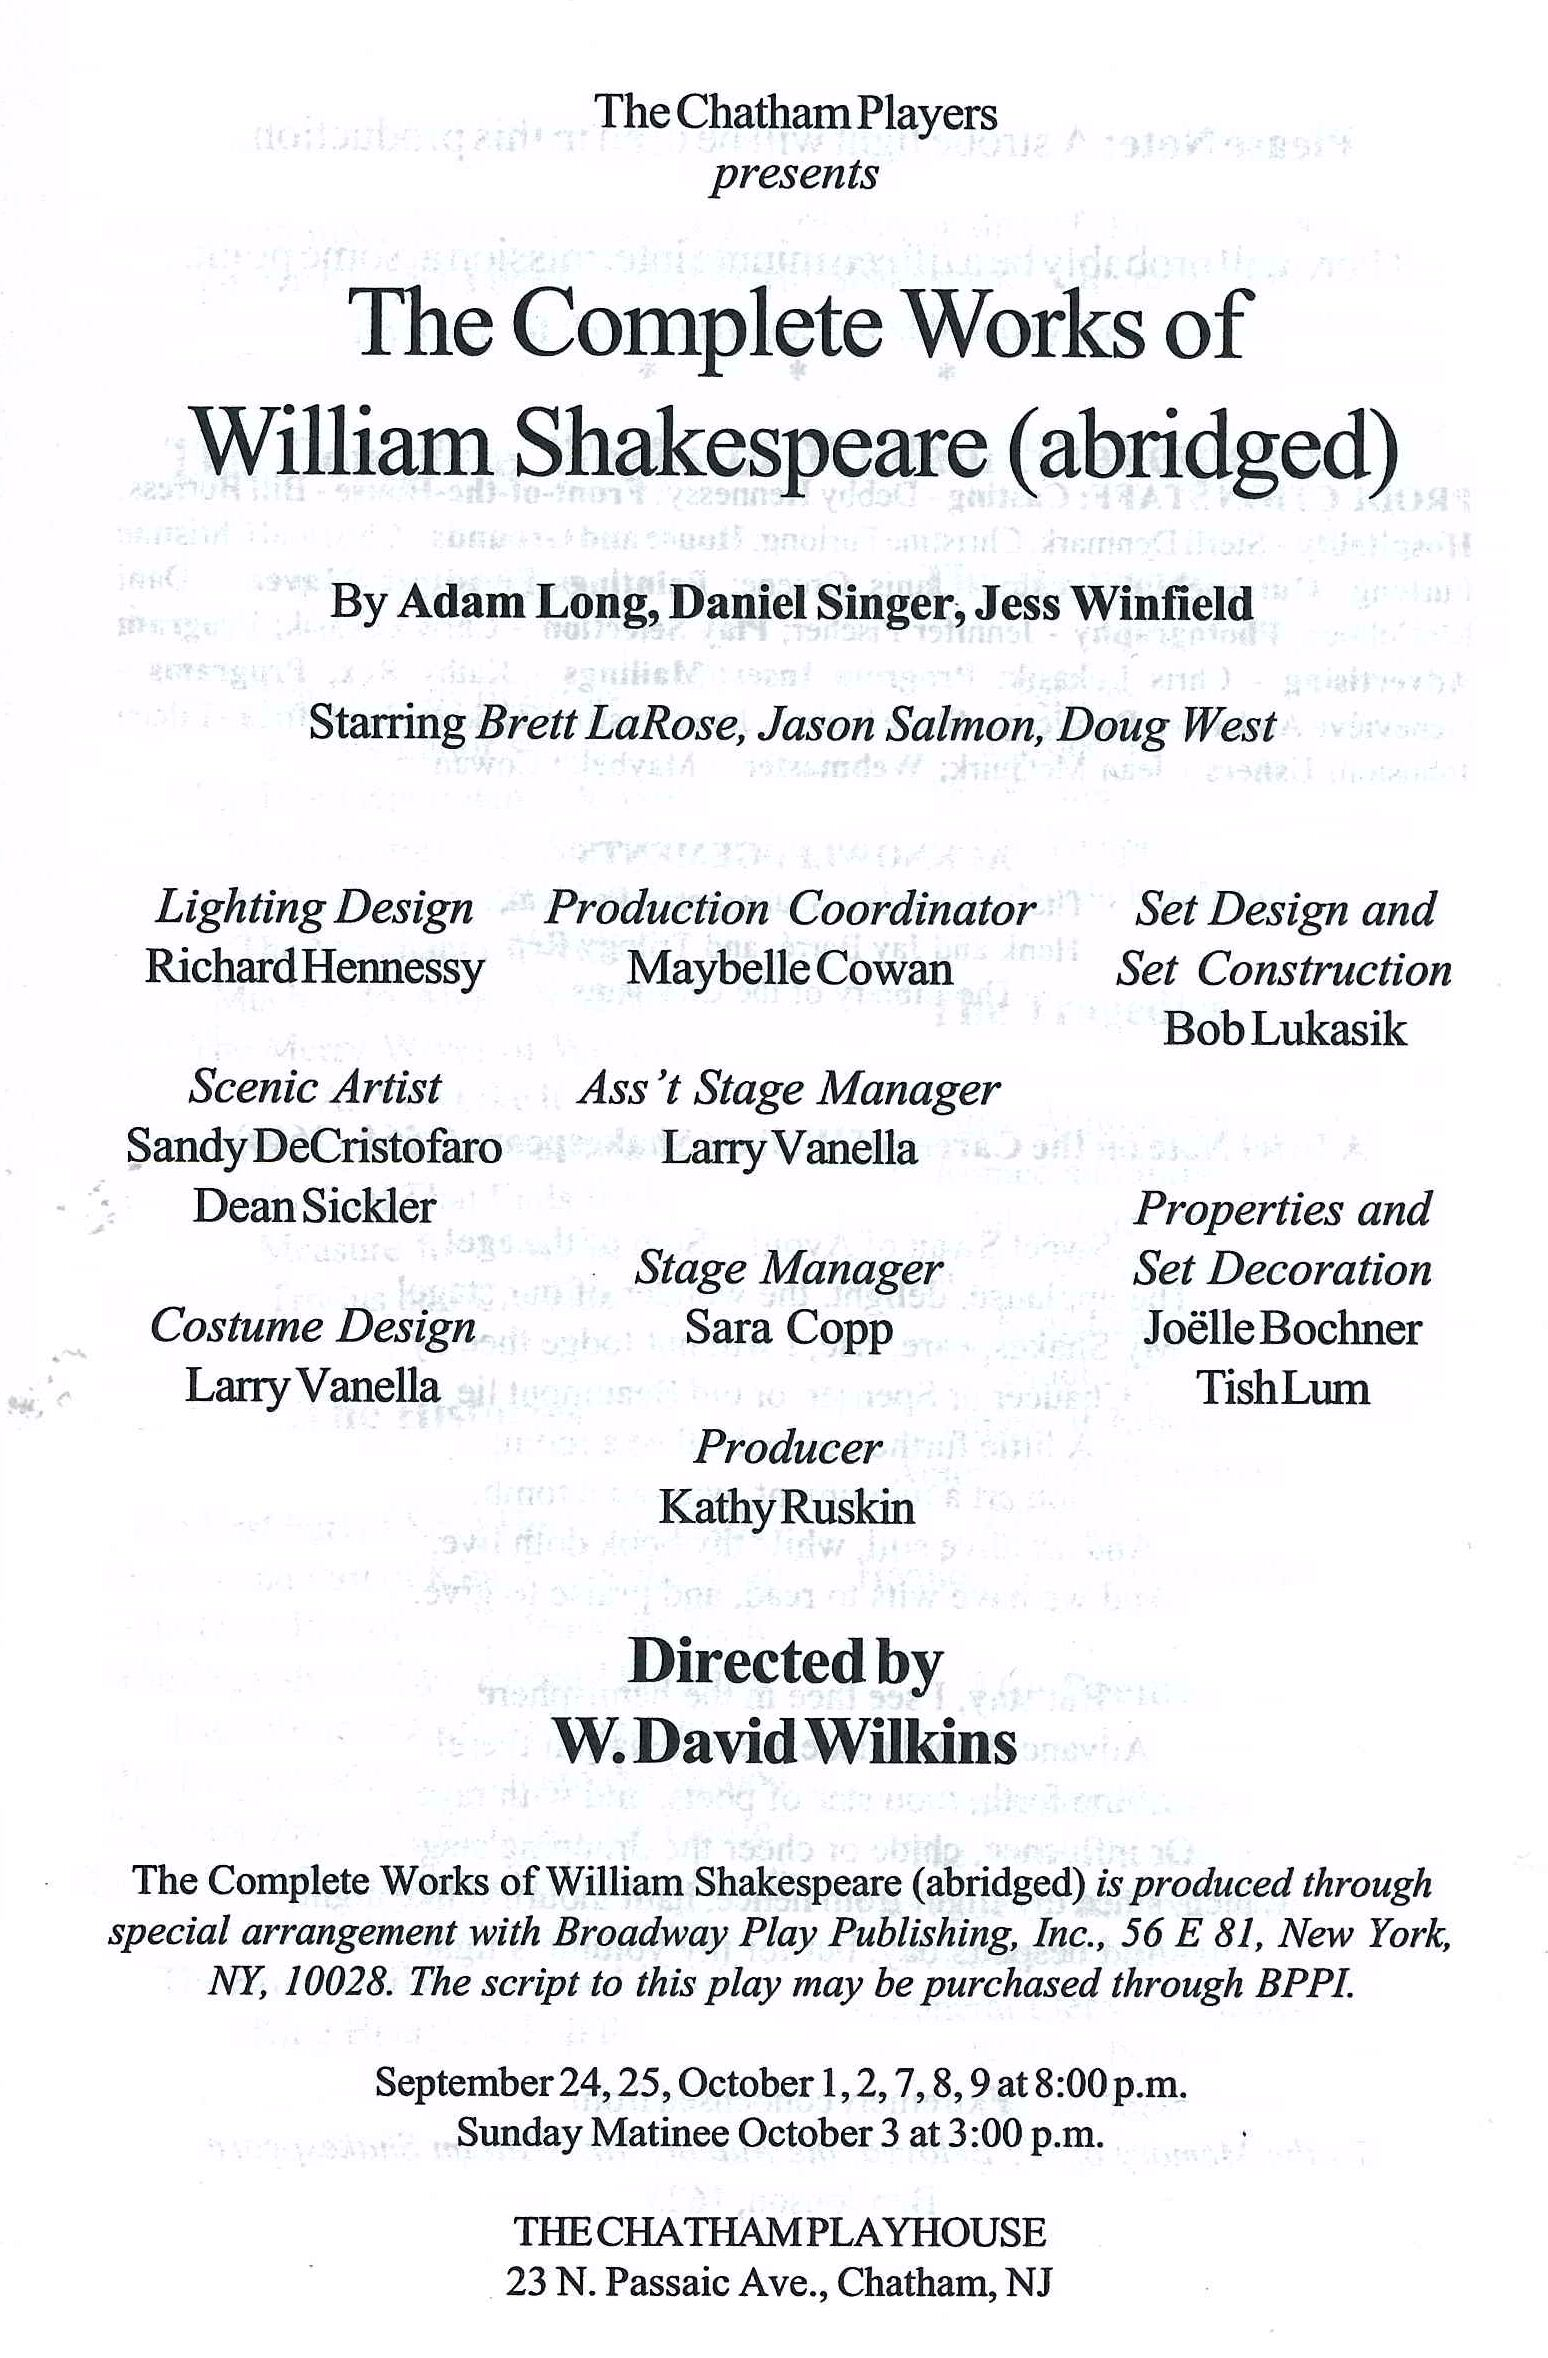 The Compleat Works of William Shakepeare Abridged (1999)